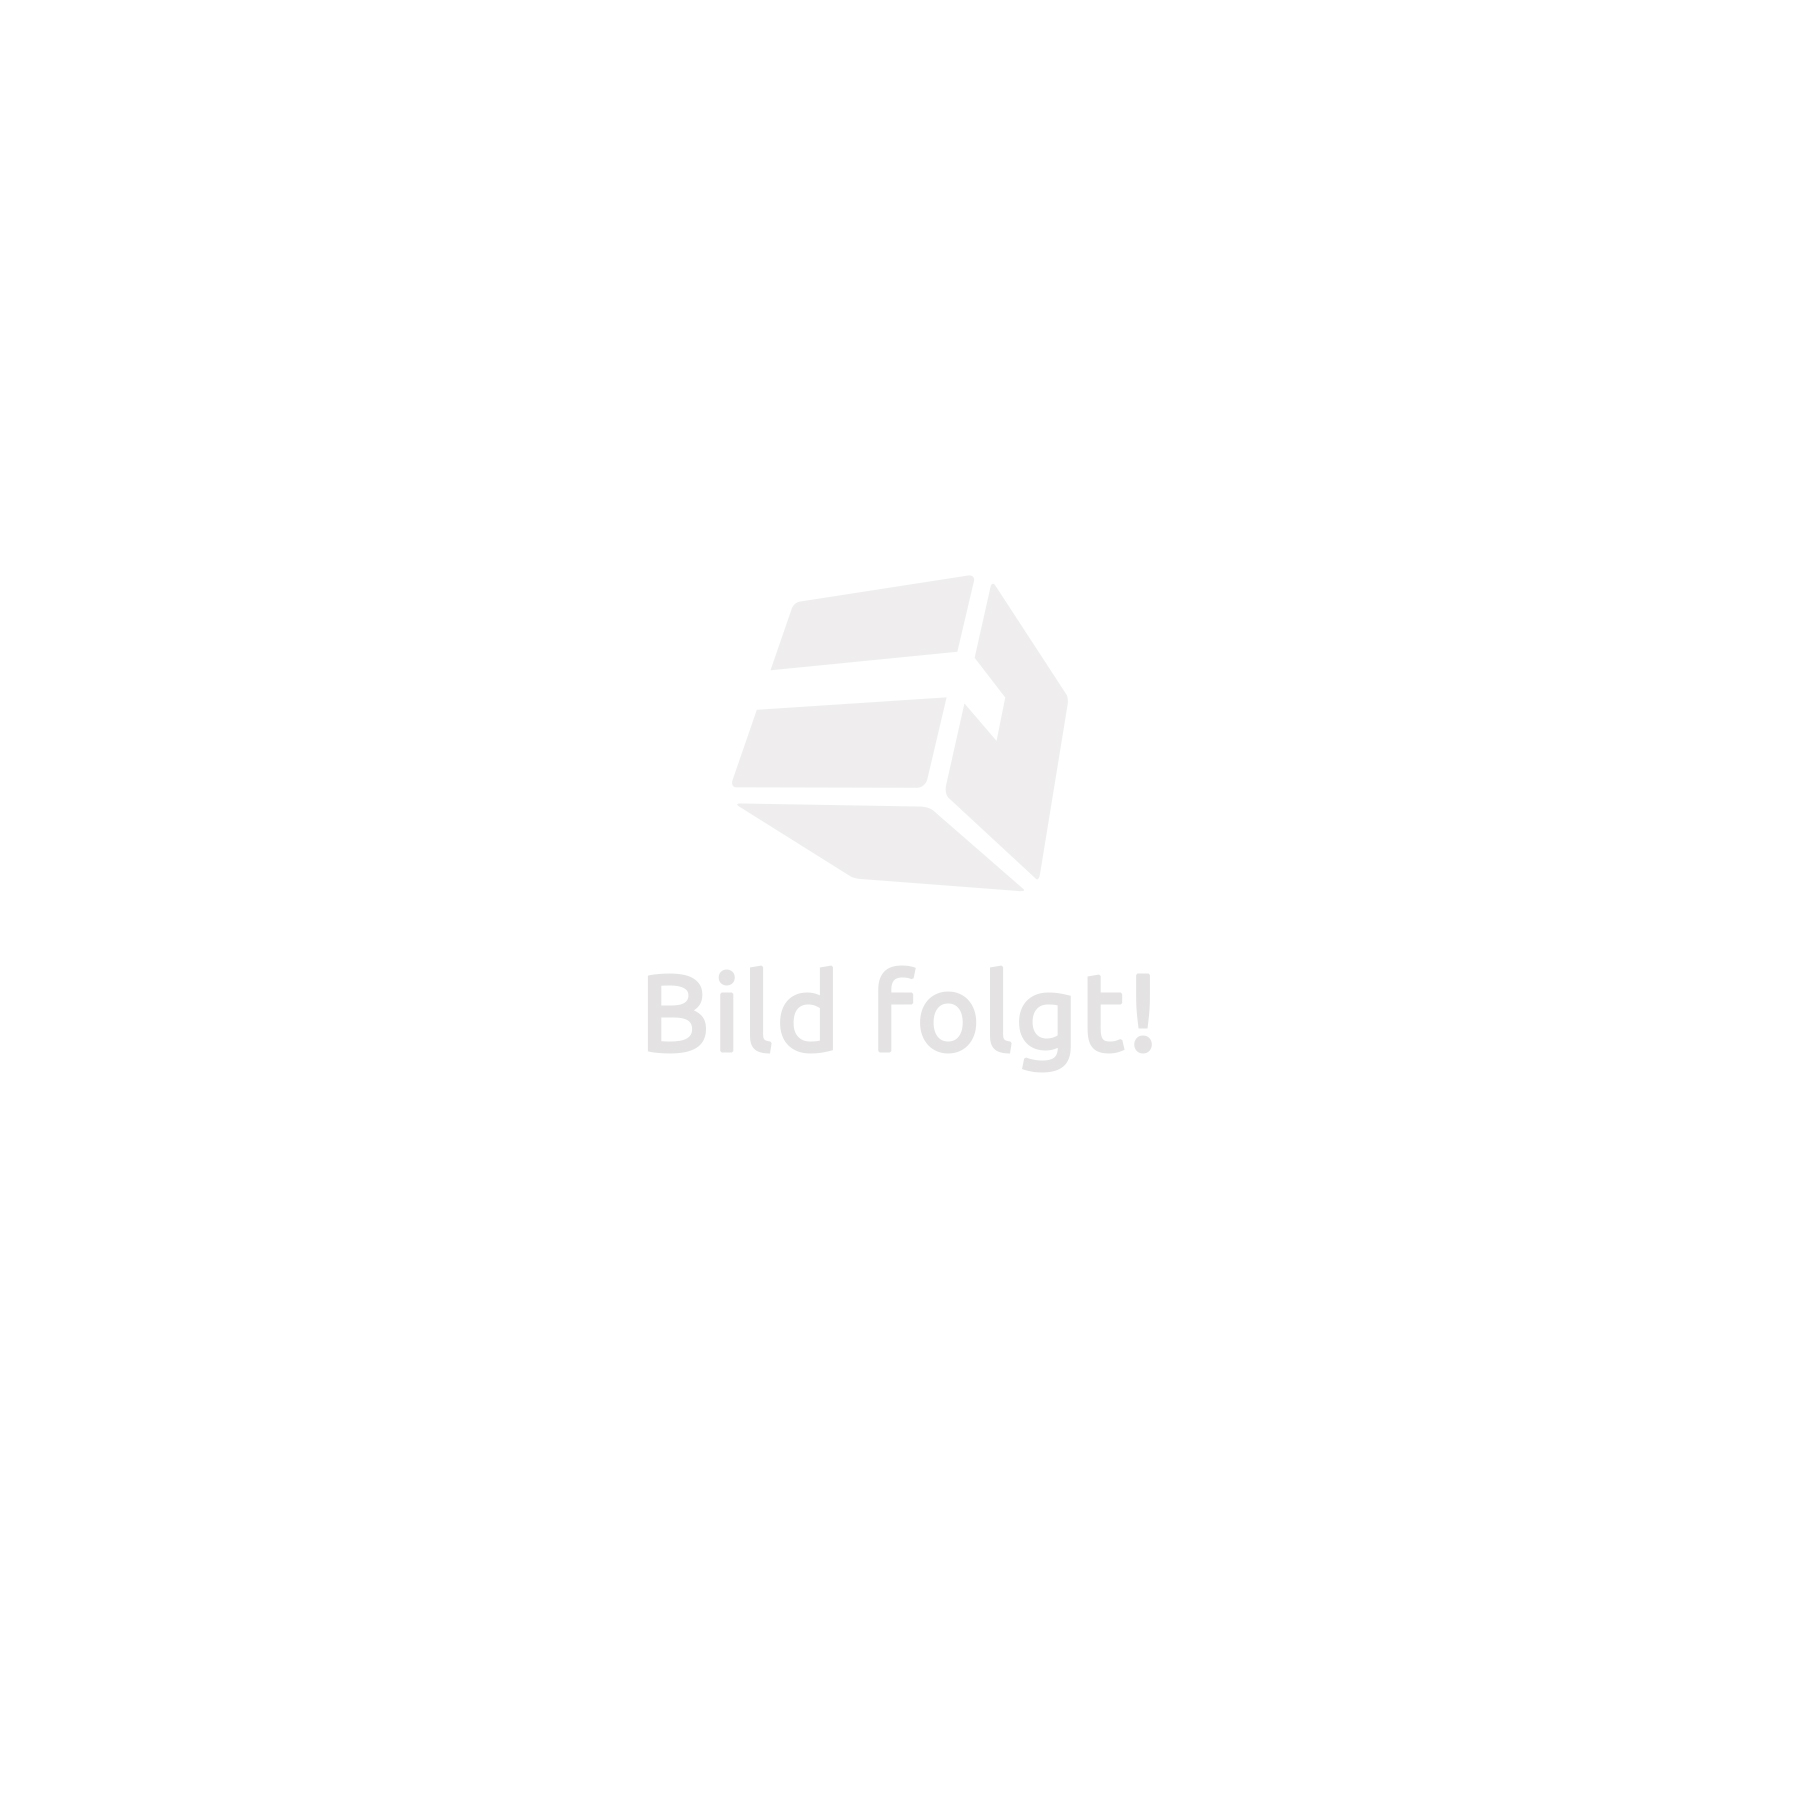 8 barre luminose a LED con sensore di movimento